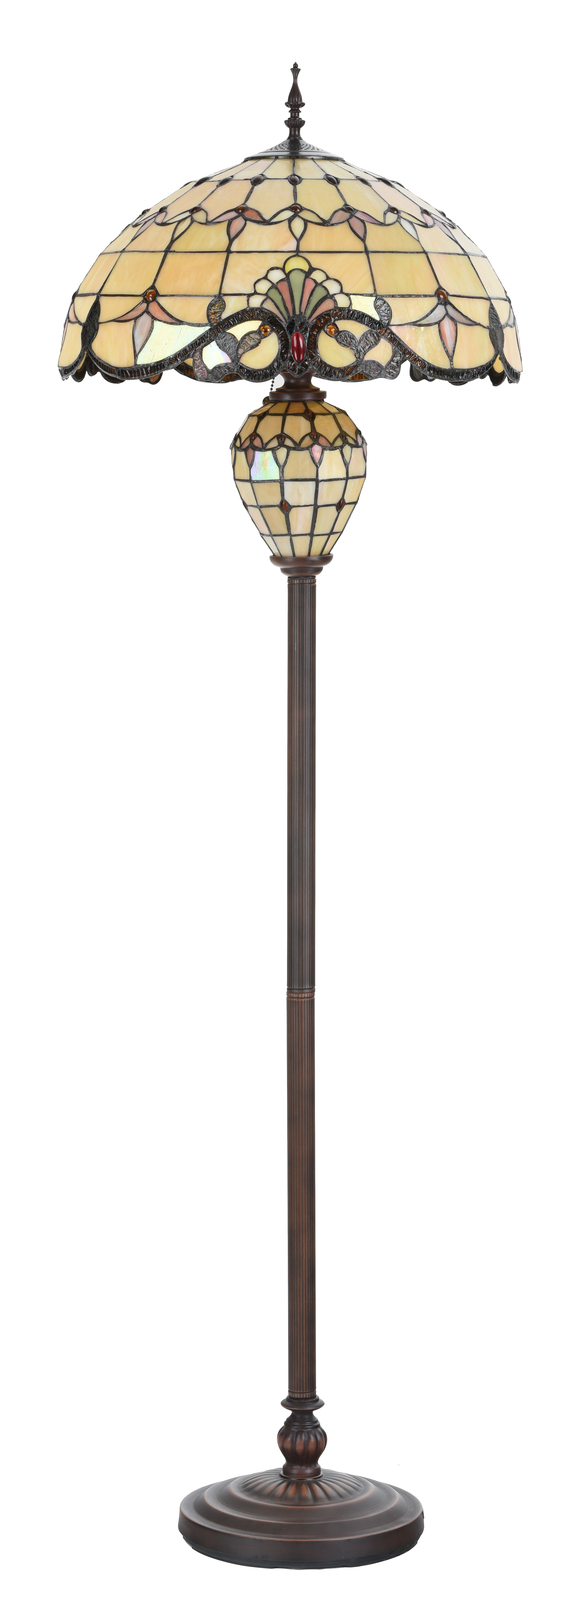 Cloud Mountain Tiffany Style Floor Lamp Victorian Home Décor Stained Glass Lamp